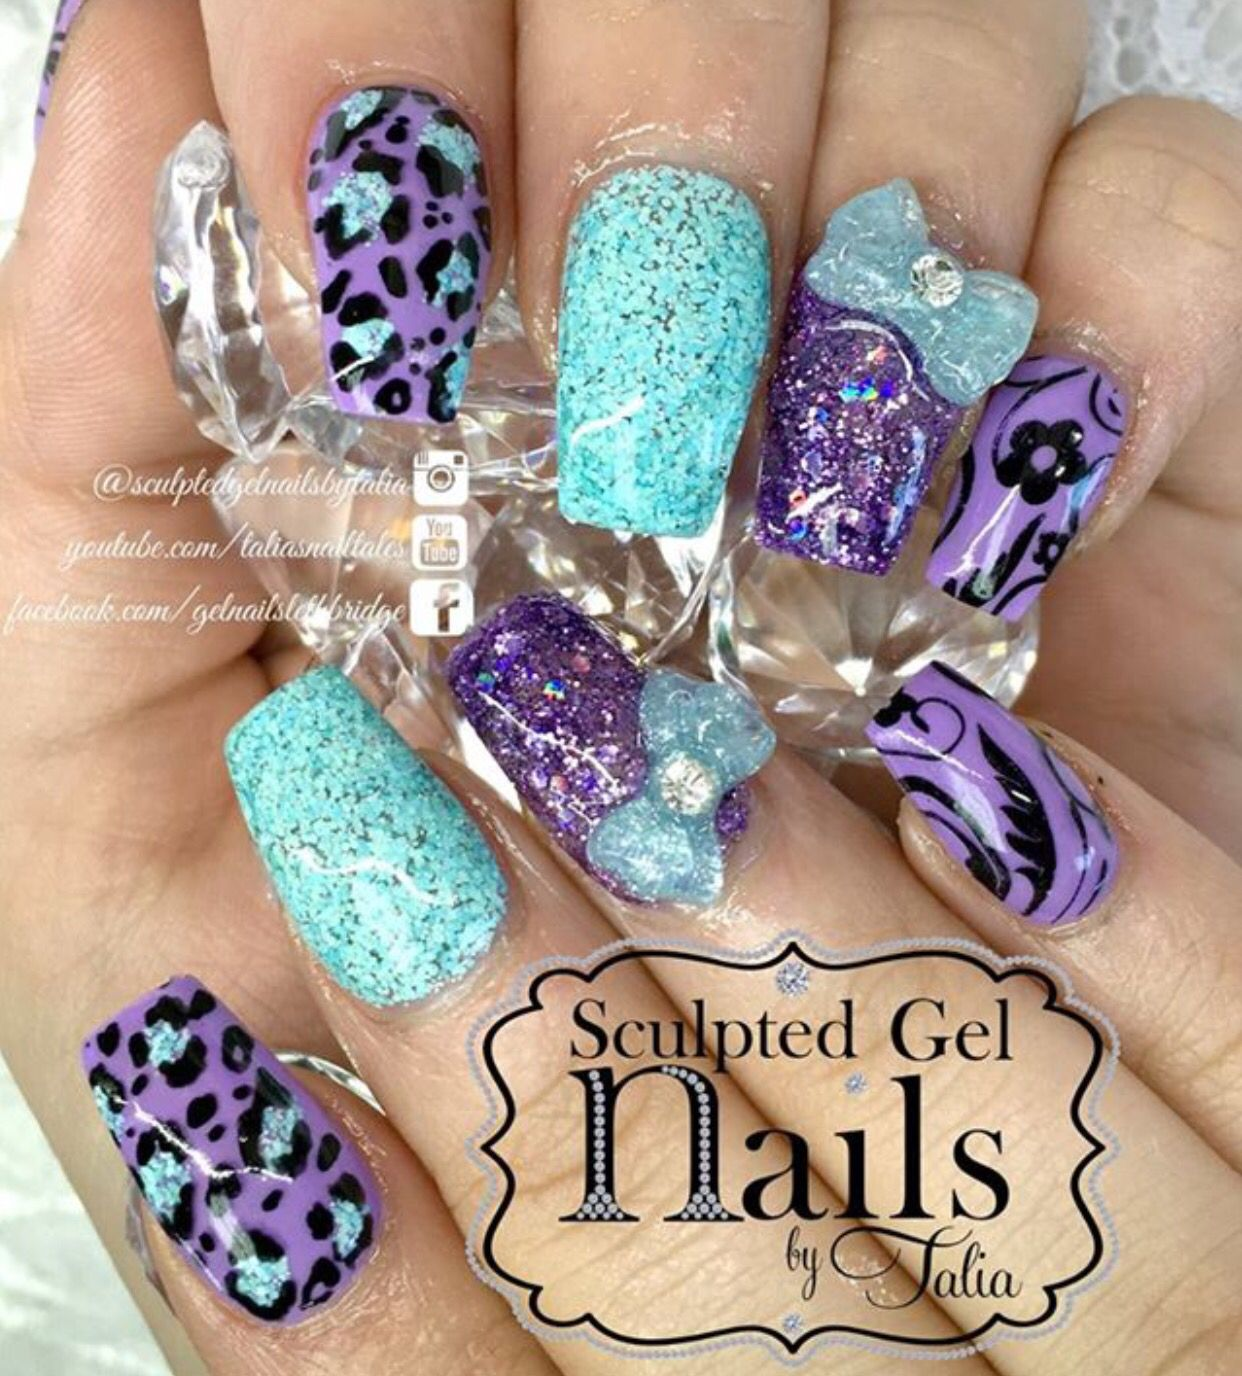 Pretty purple and teal | Nail Bling! | Pinterest | Teal, Diva nails ...